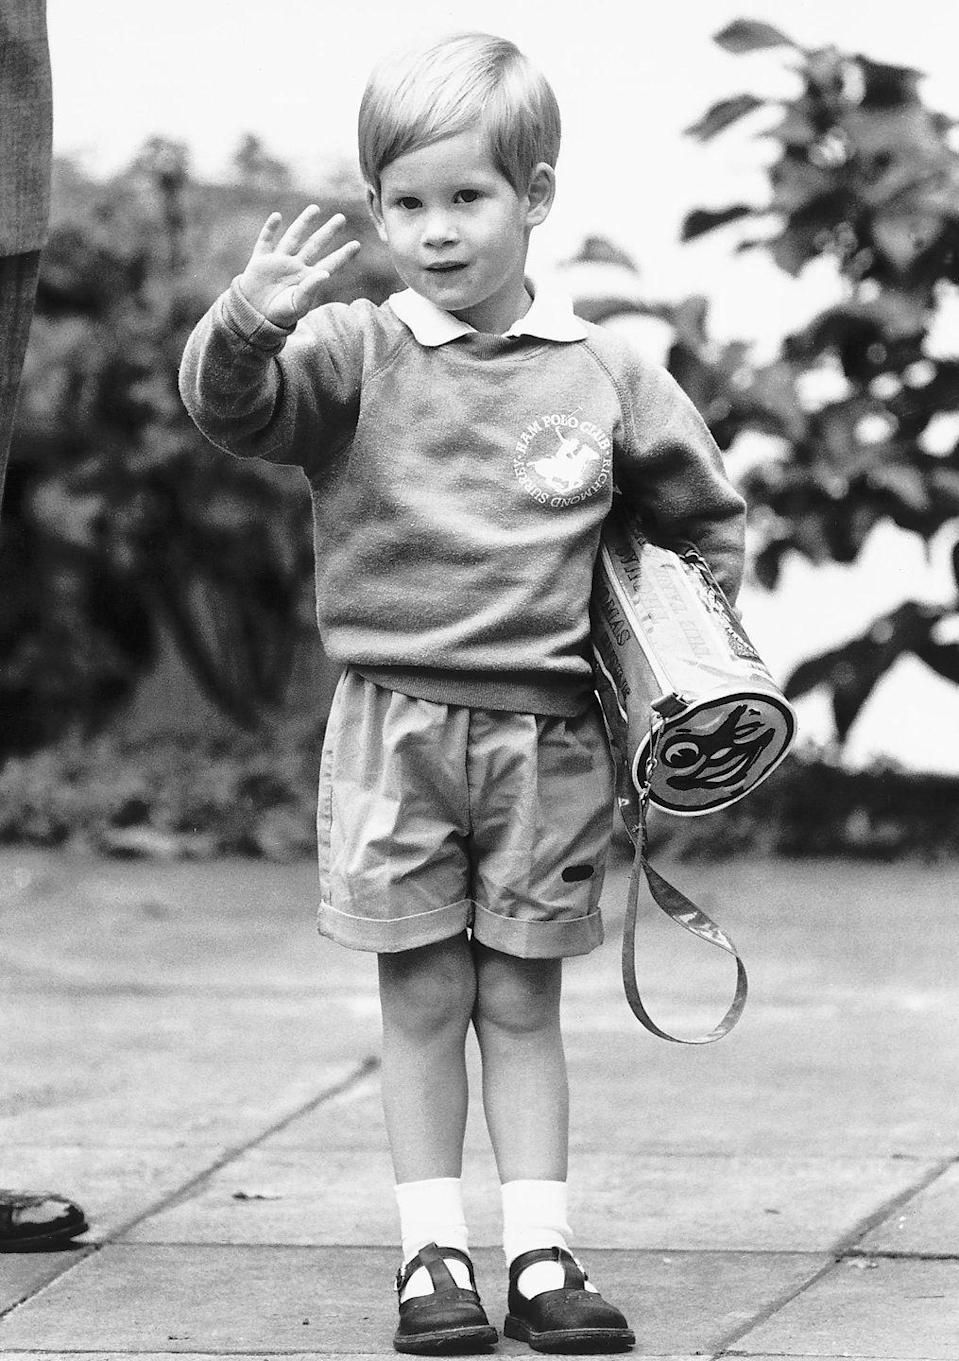 <p>Prince Harry followed in the footsteps of his brother and sported his own pair of baggy shorts on his way to nursery school in 1987. Please note his <em>Thomas the Tank Engine</em> backpack.</p>